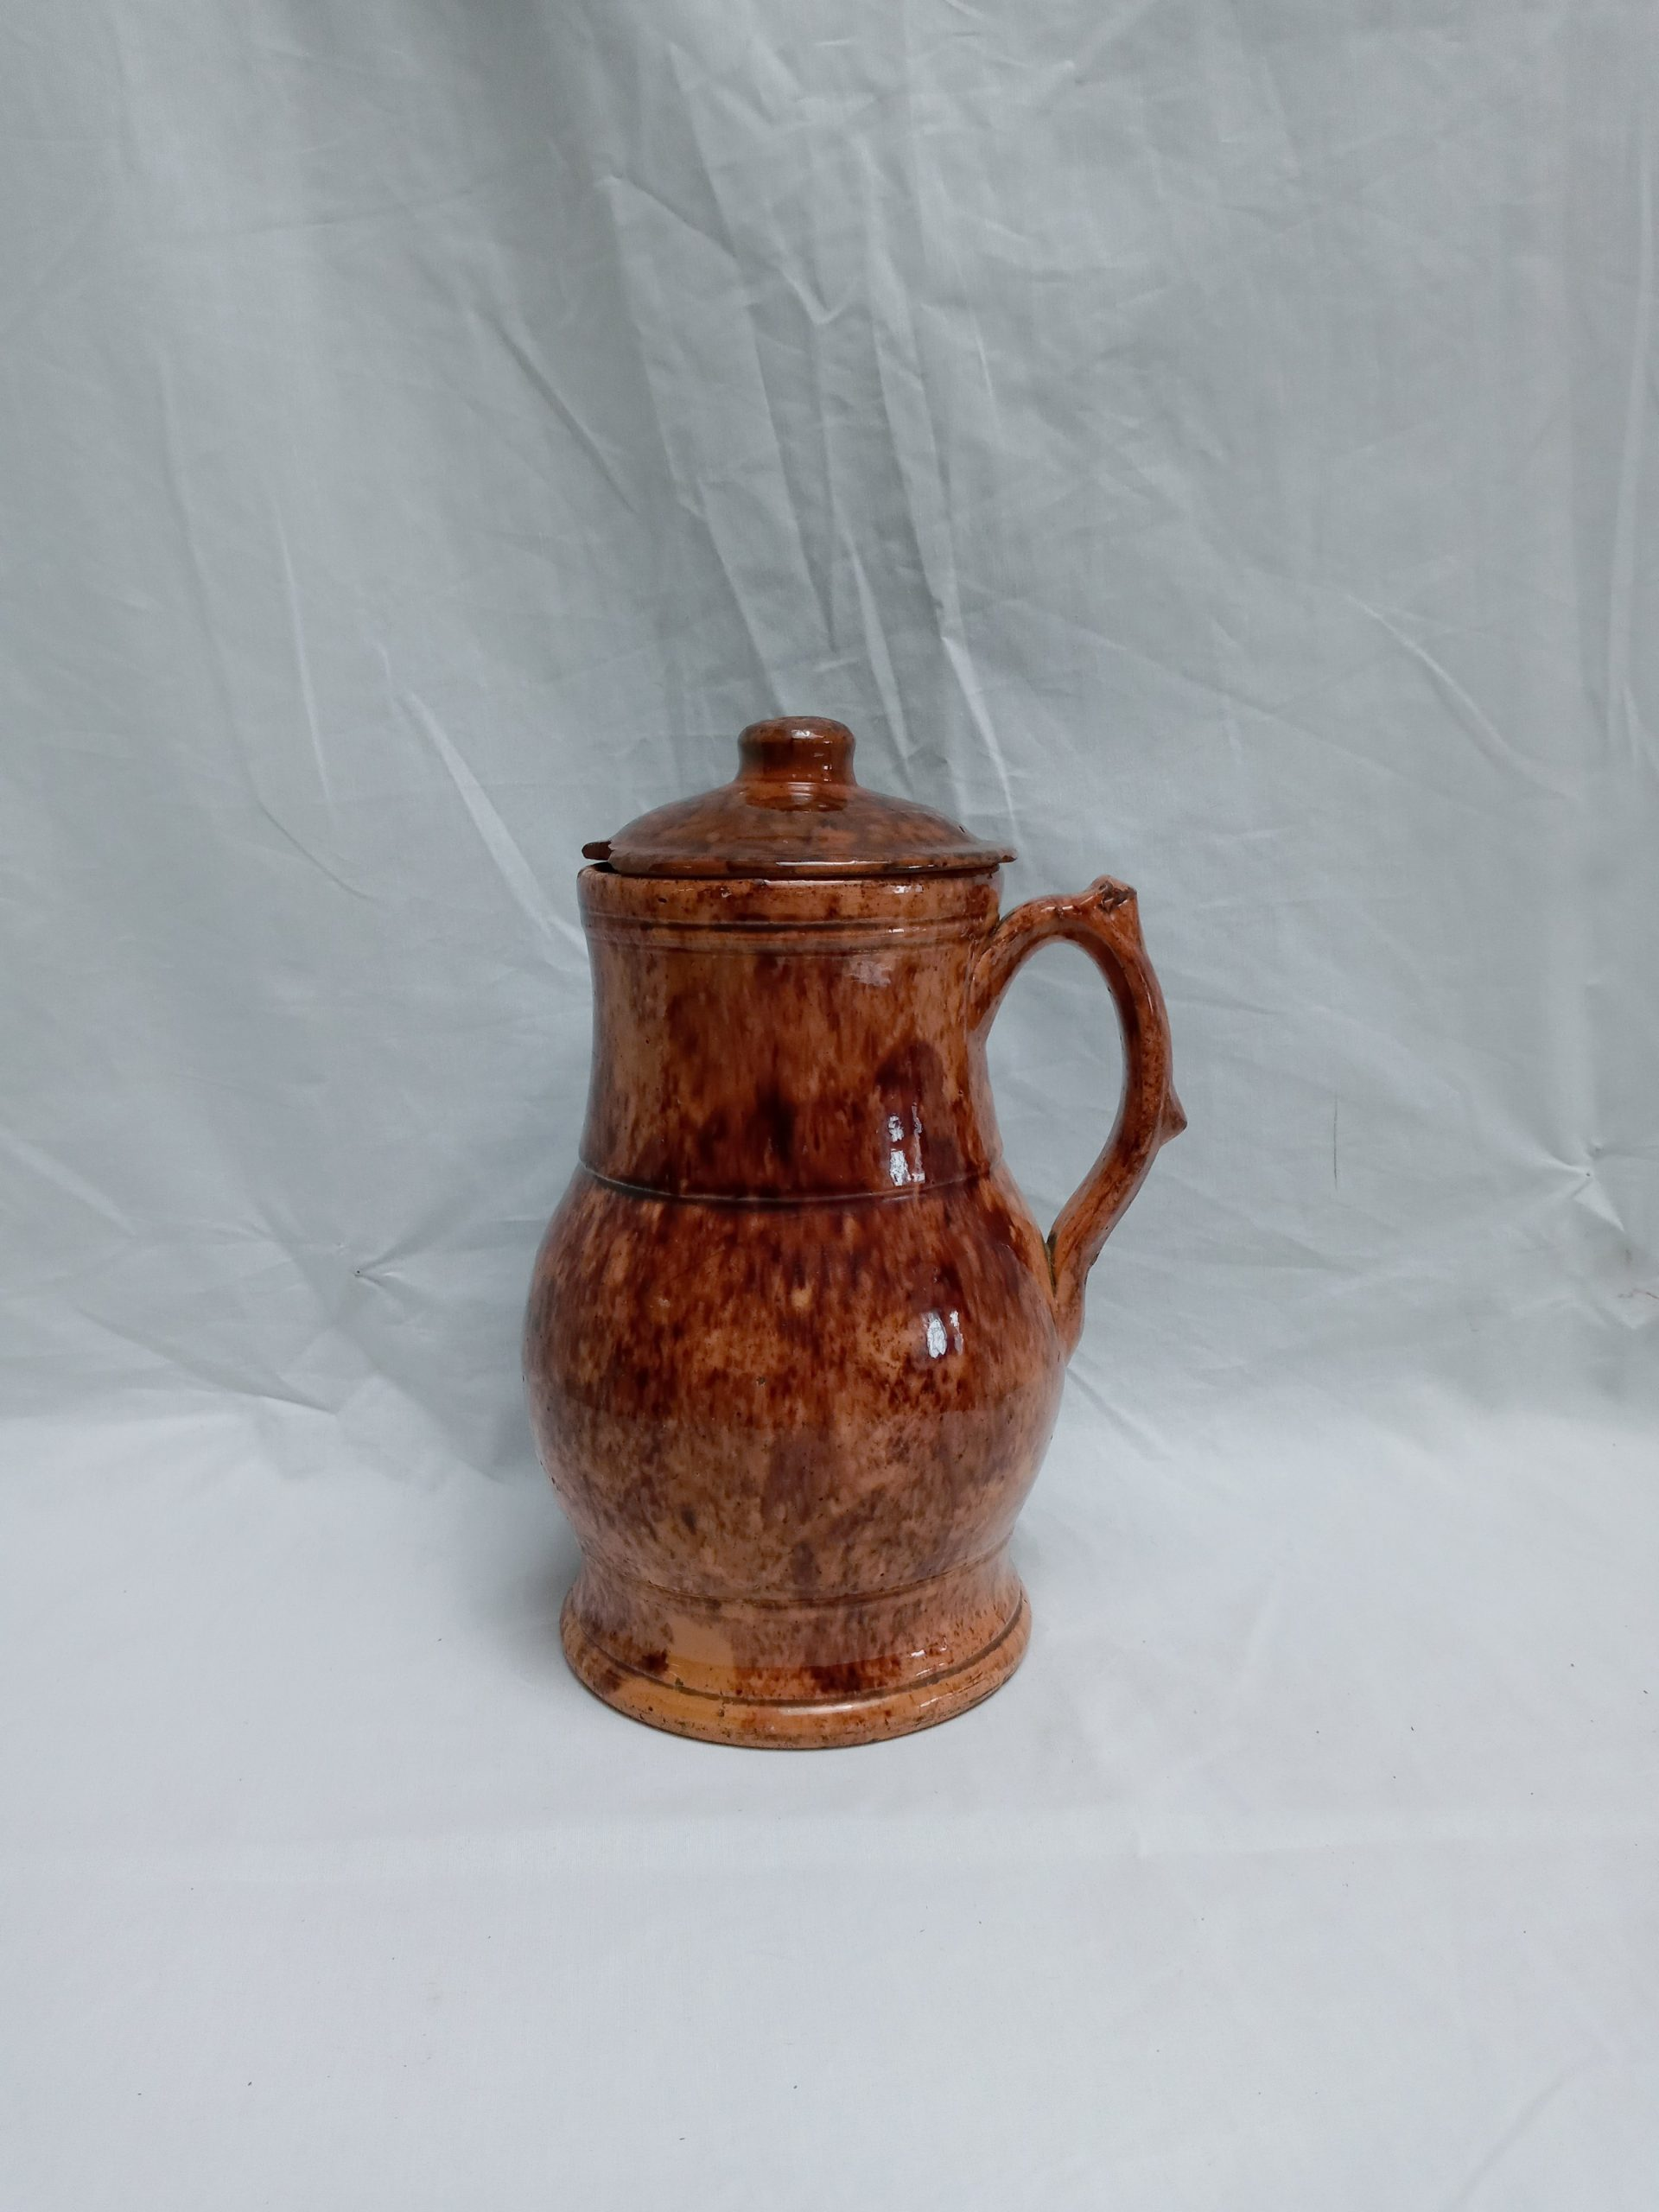 26-26264 Redware Pottery handled pitcher, signed John Bell Image